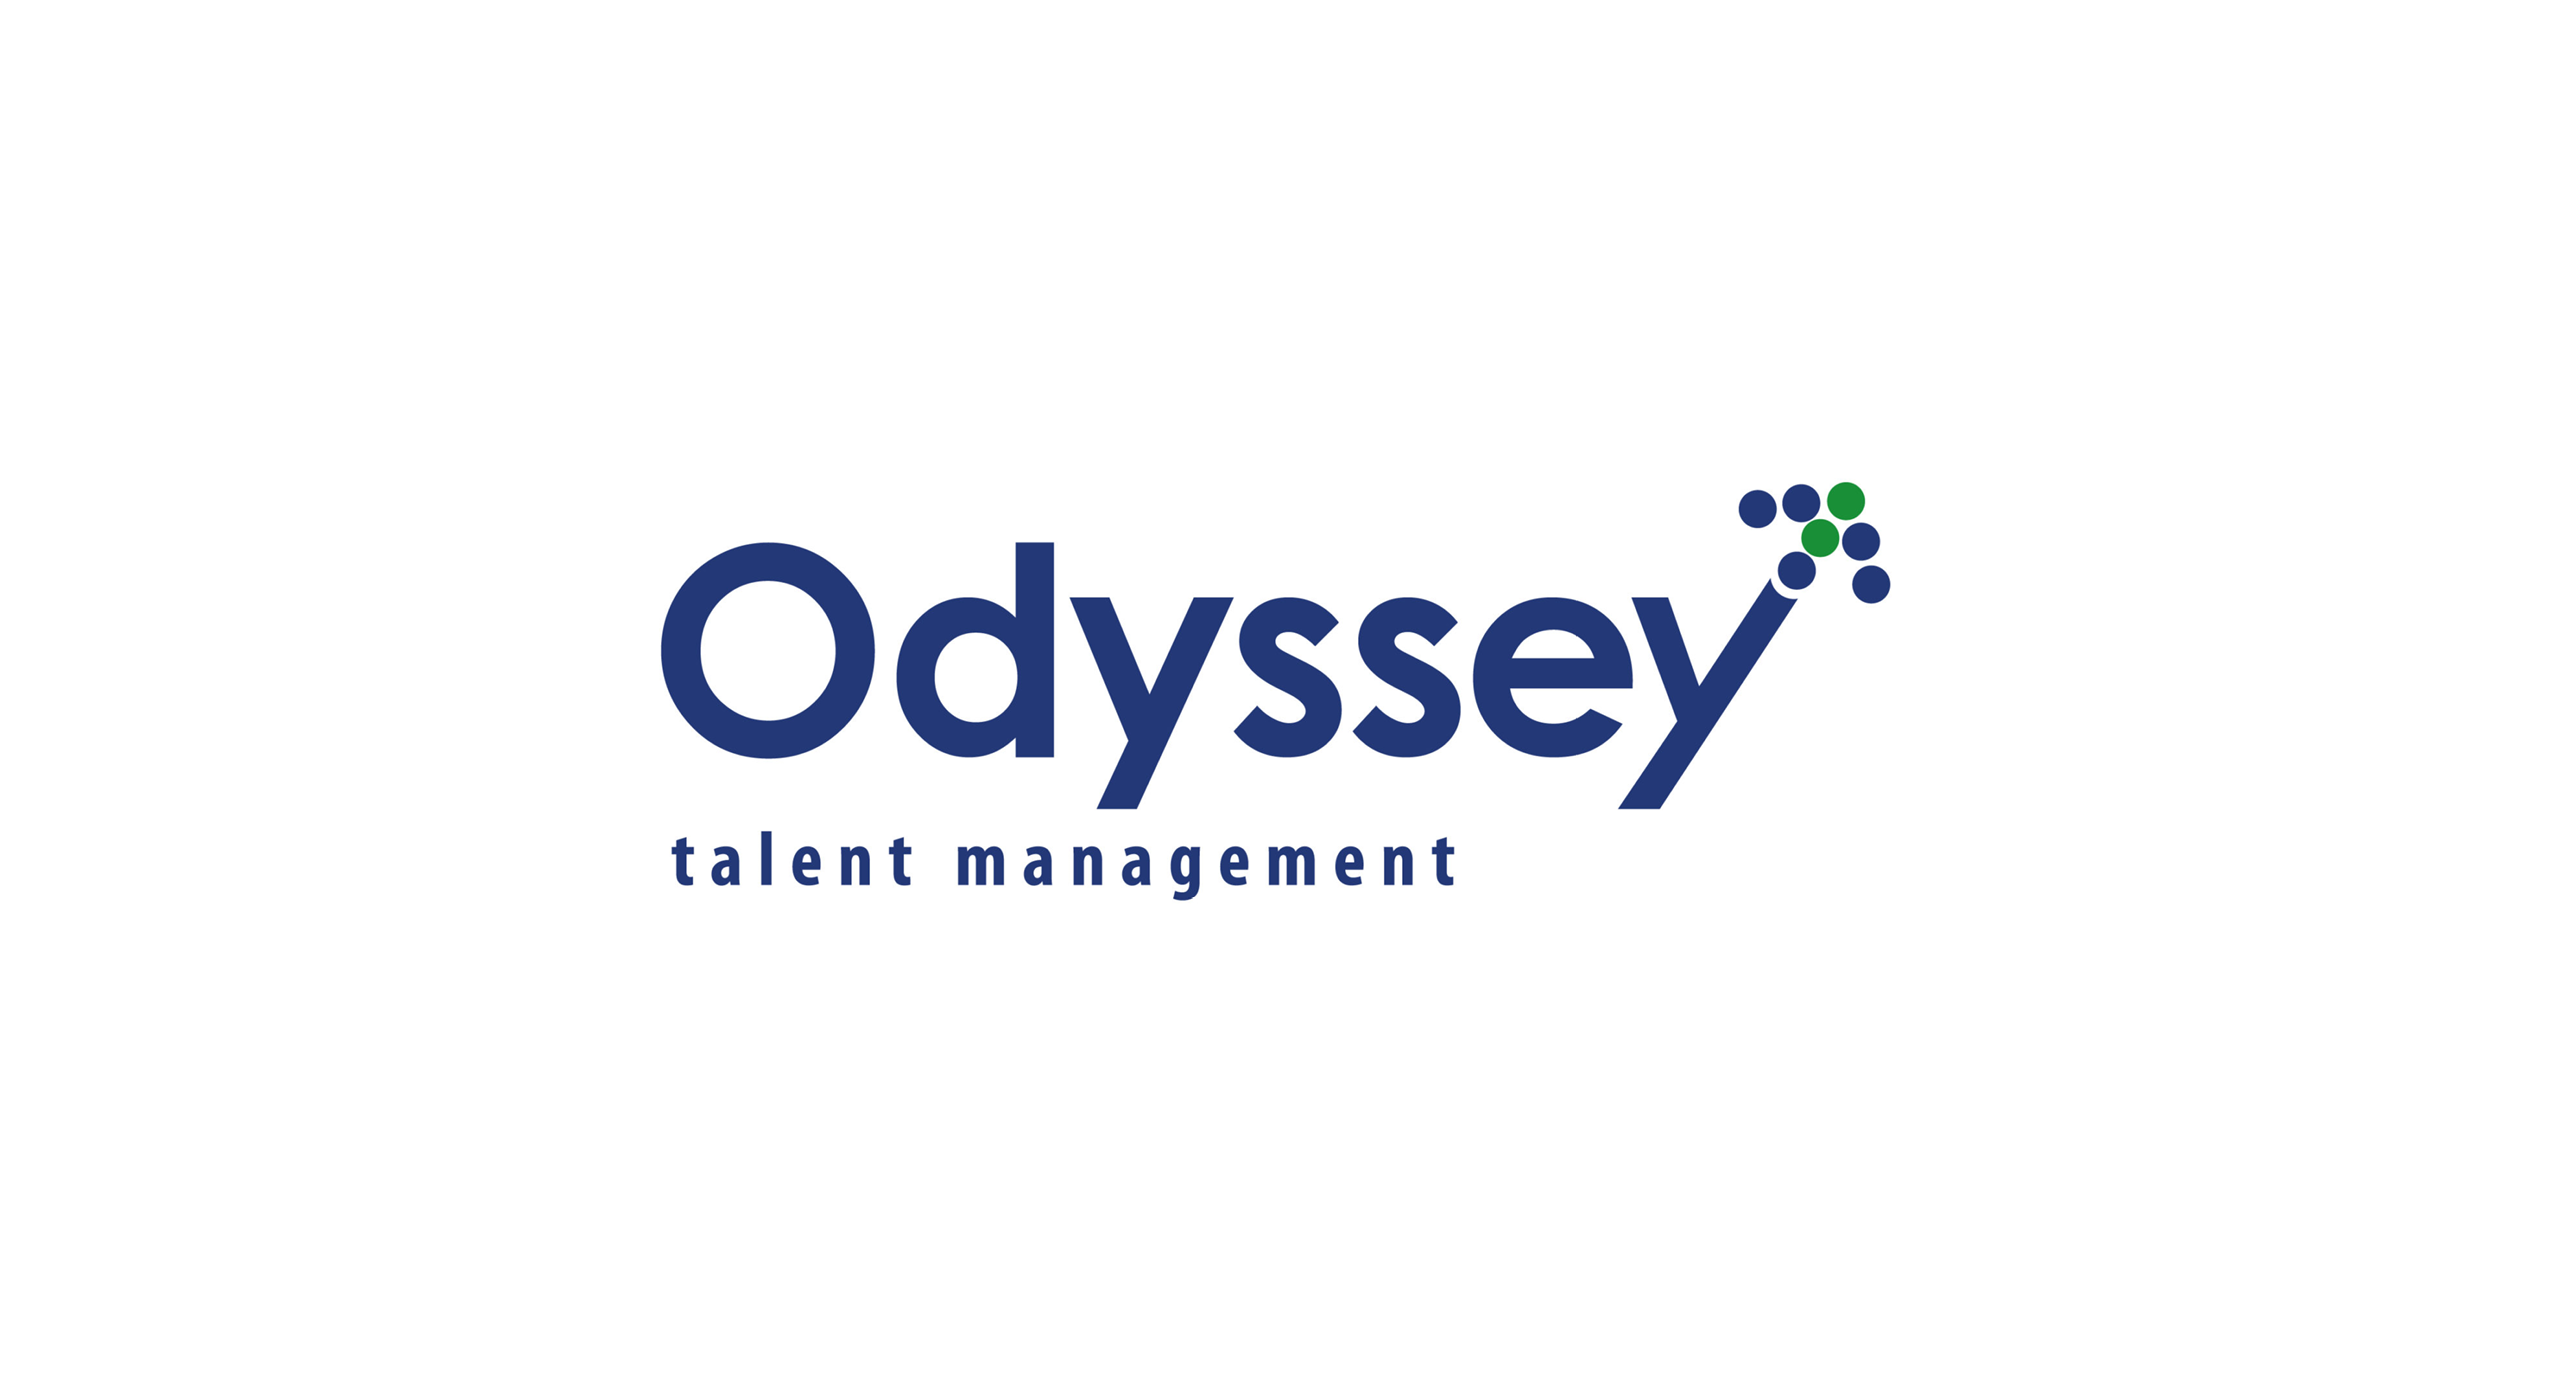 Odyssey talent management